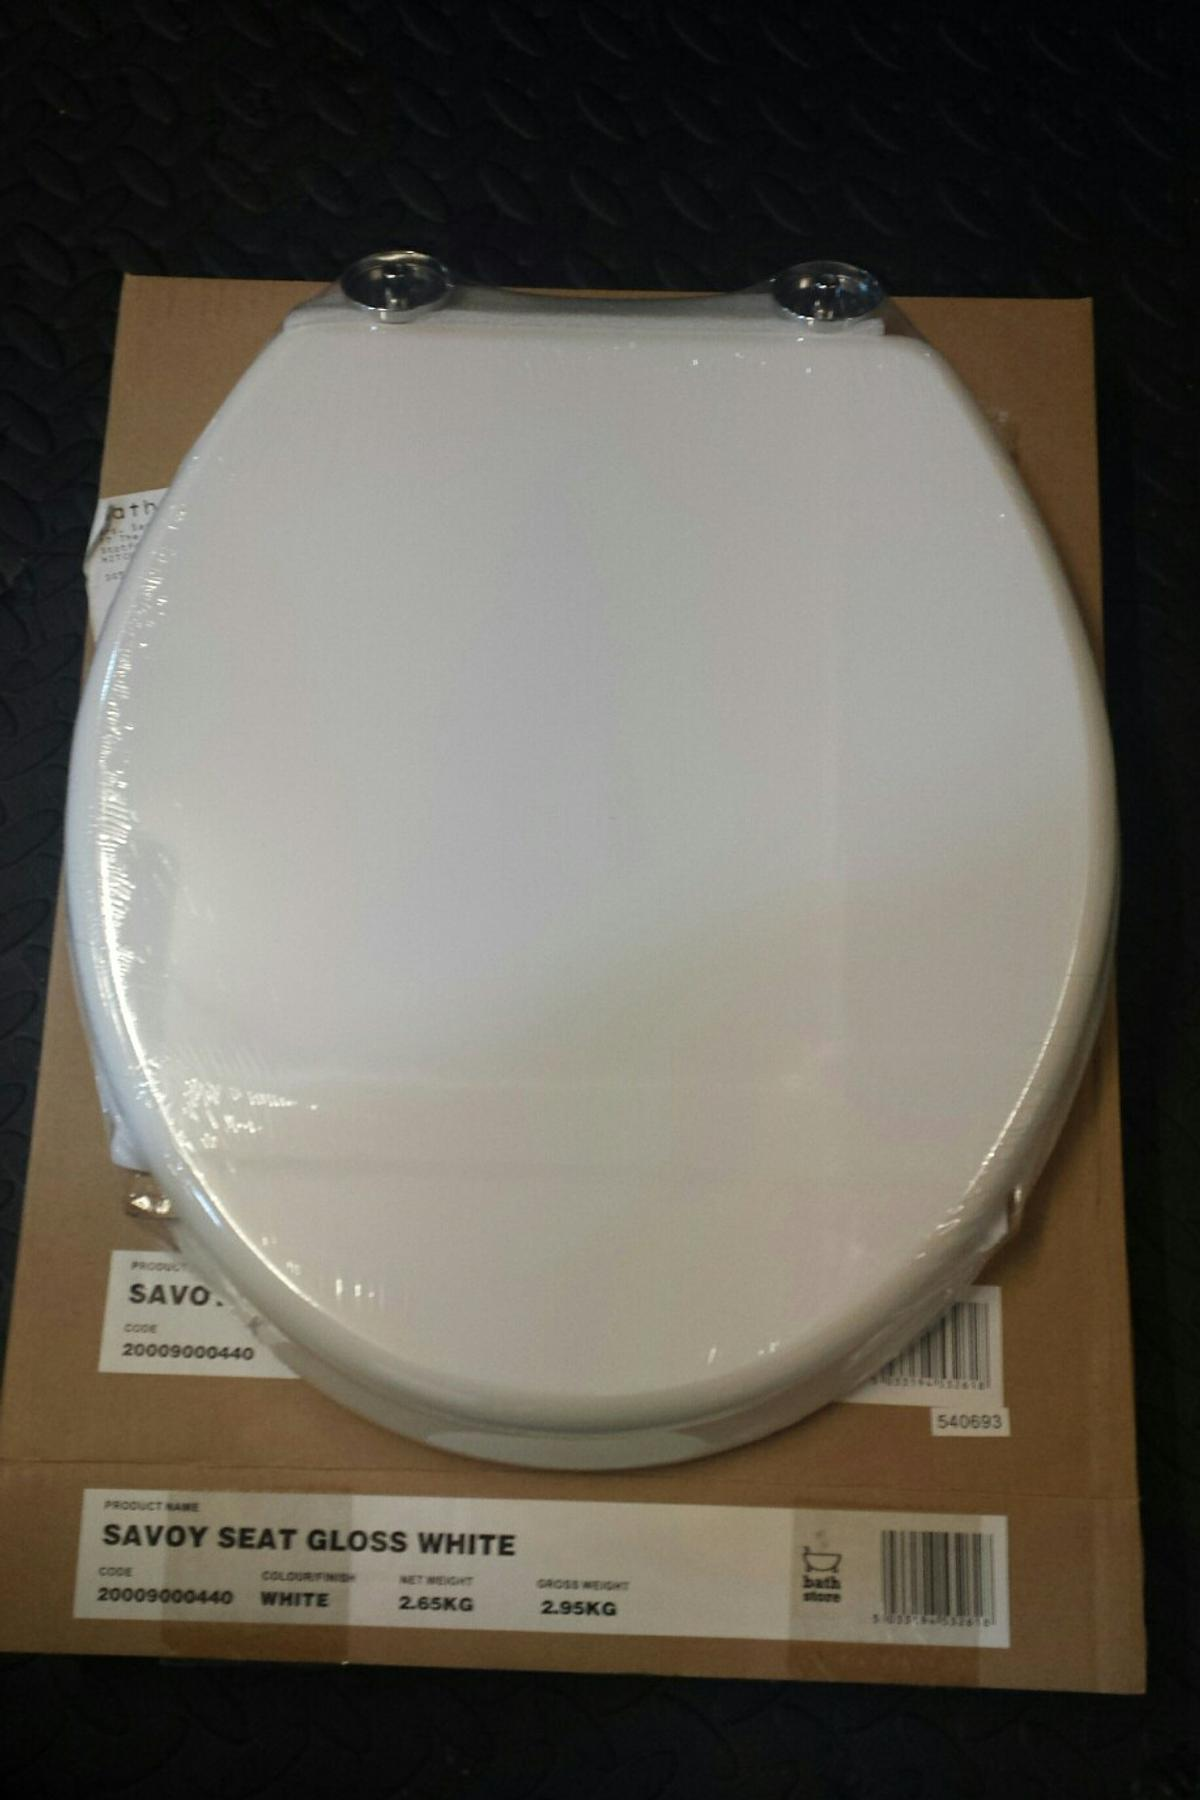 Swell Savoy Toilet Seat Gmtry Best Dining Table And Chair Ideas Images Gmtryco